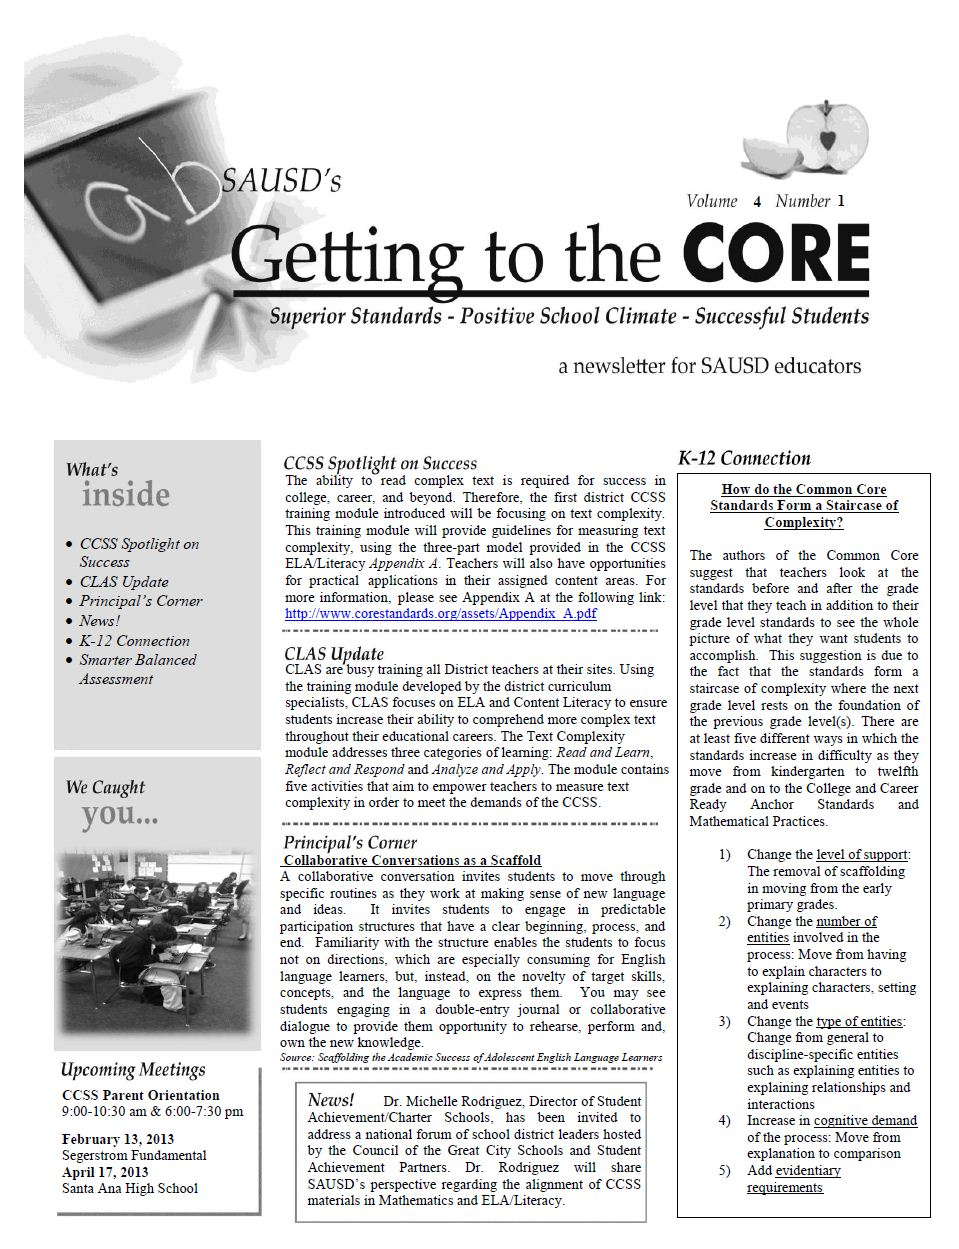 CORE Newsletter, February 7, 2013